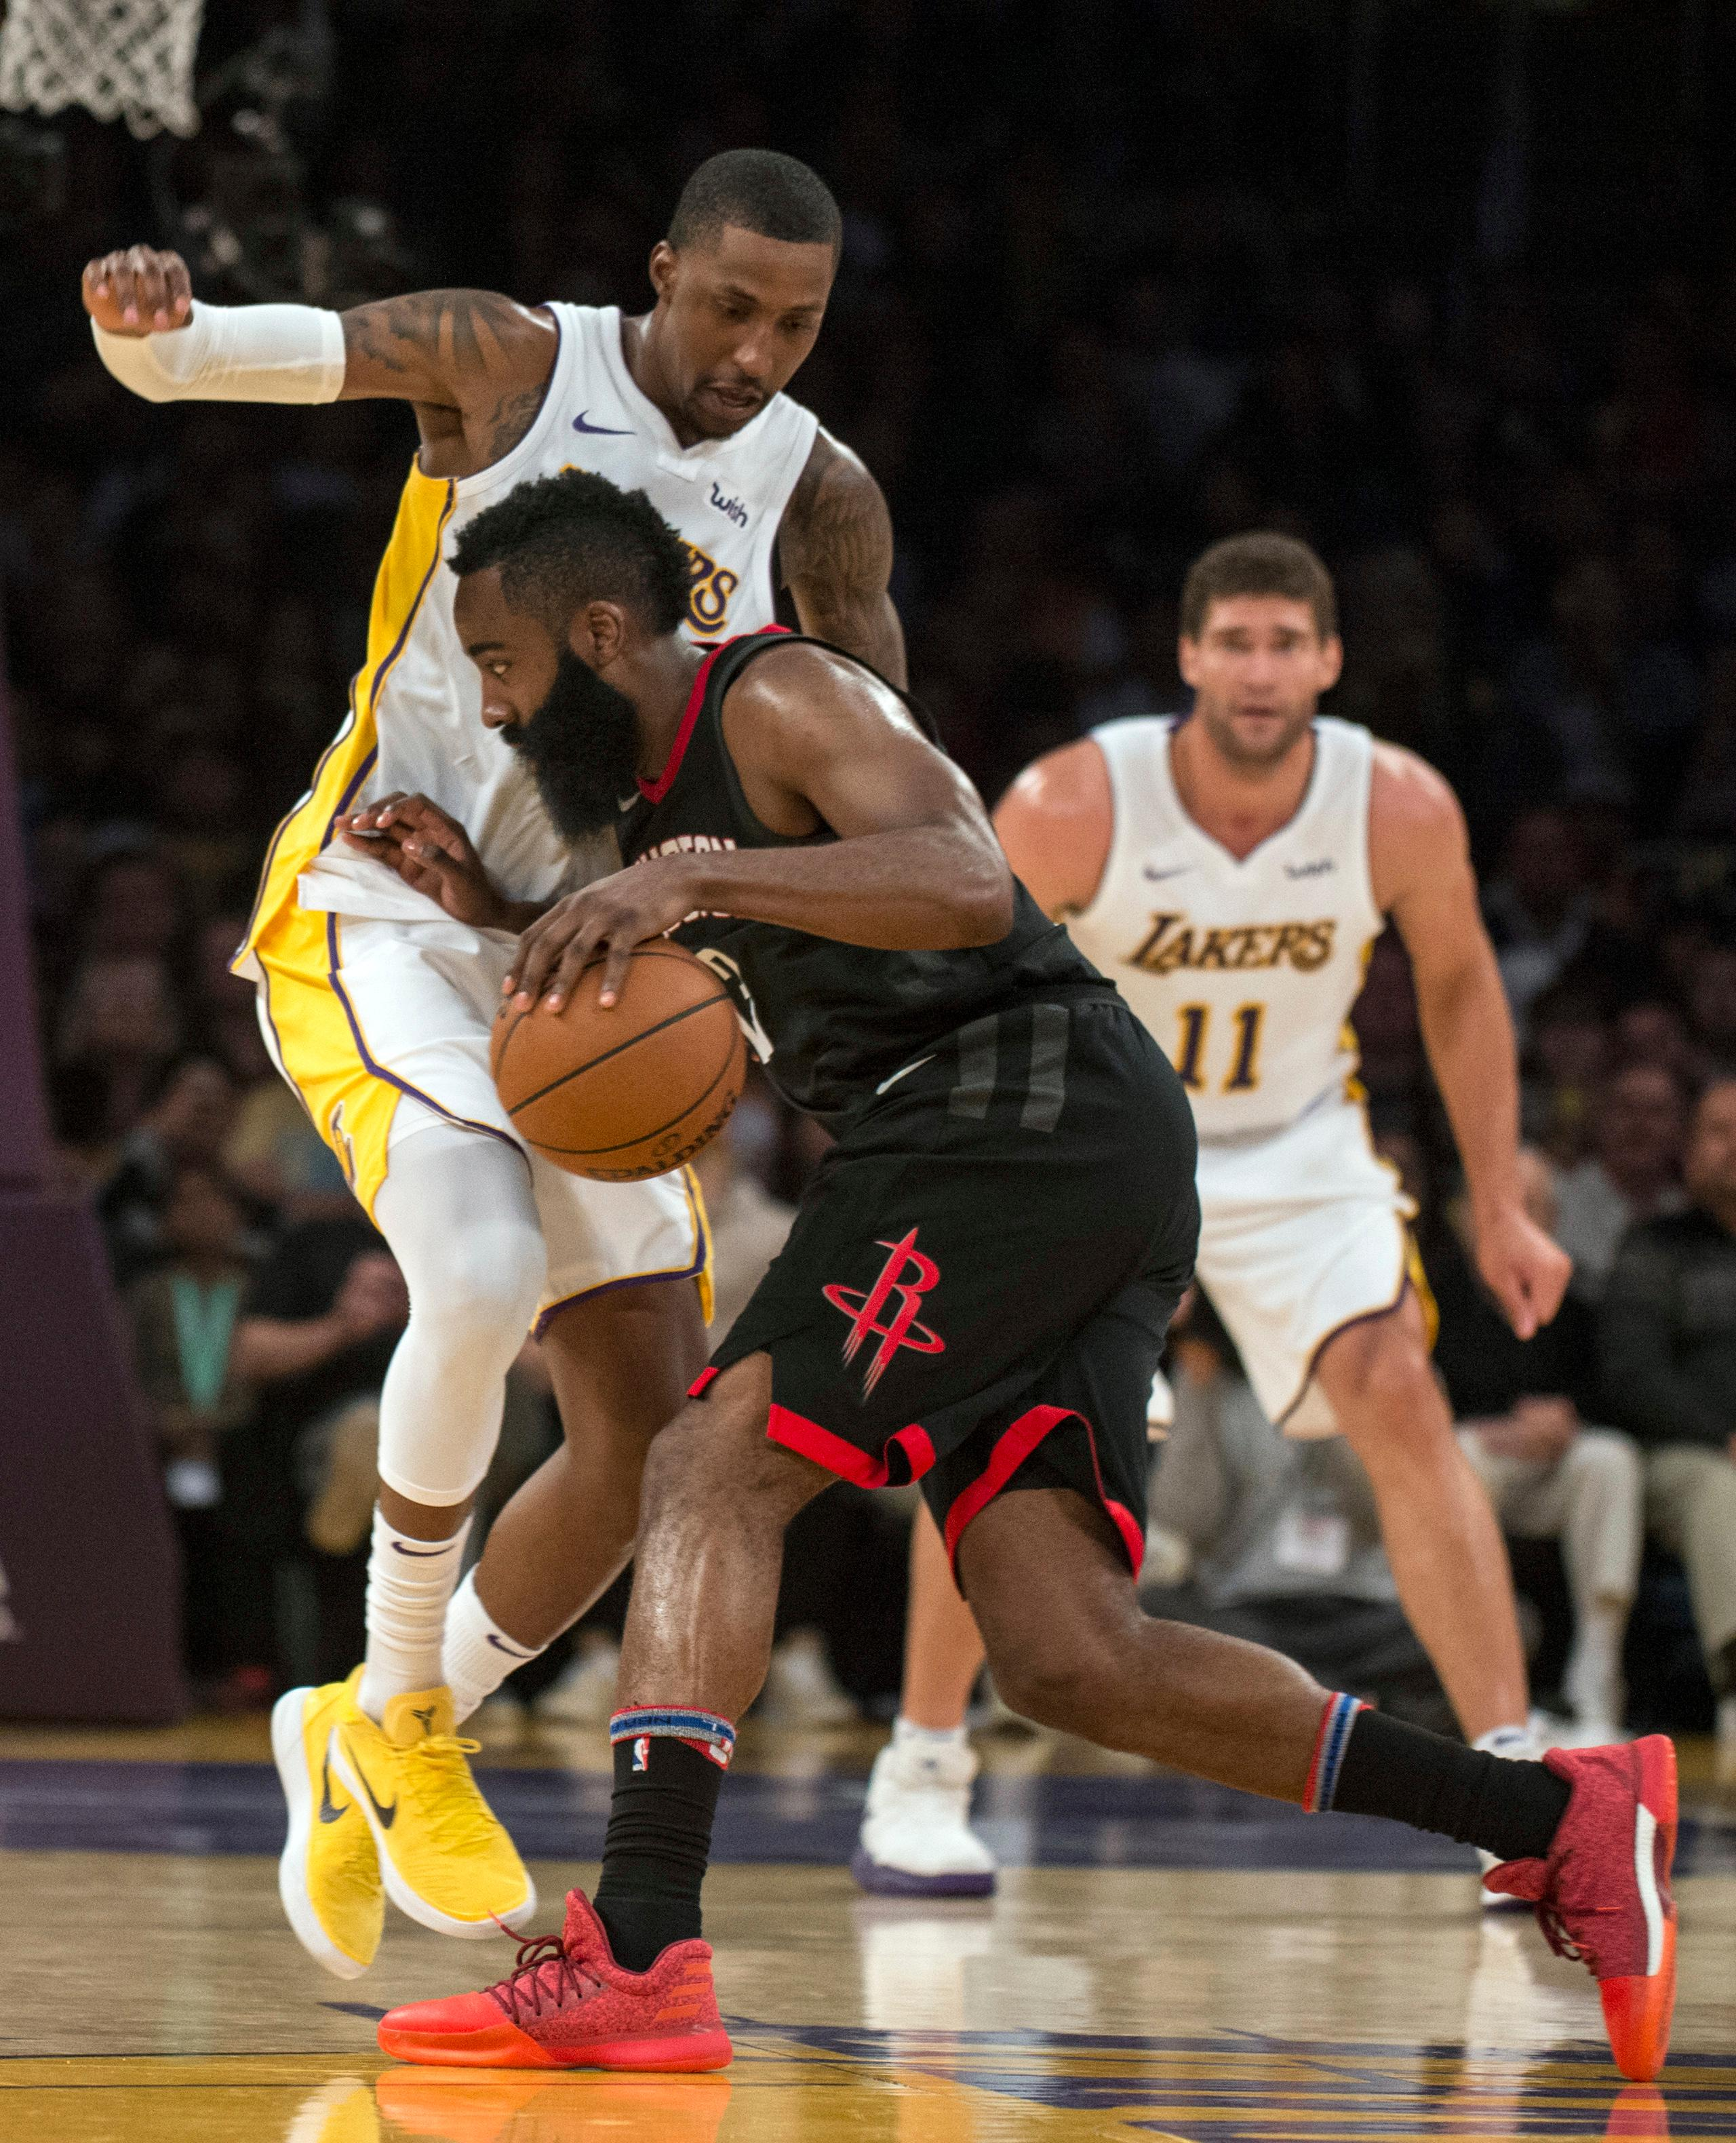 Los Angeles Lakers guard Kentavious Caldwell-Pope, left, defends Houston Rockets guard James Harden, center, during the second half of an NBA basketball game Sunday, Dec. 3, 2017, in Los Angeles. (AP Photo/Kyusung Gong)